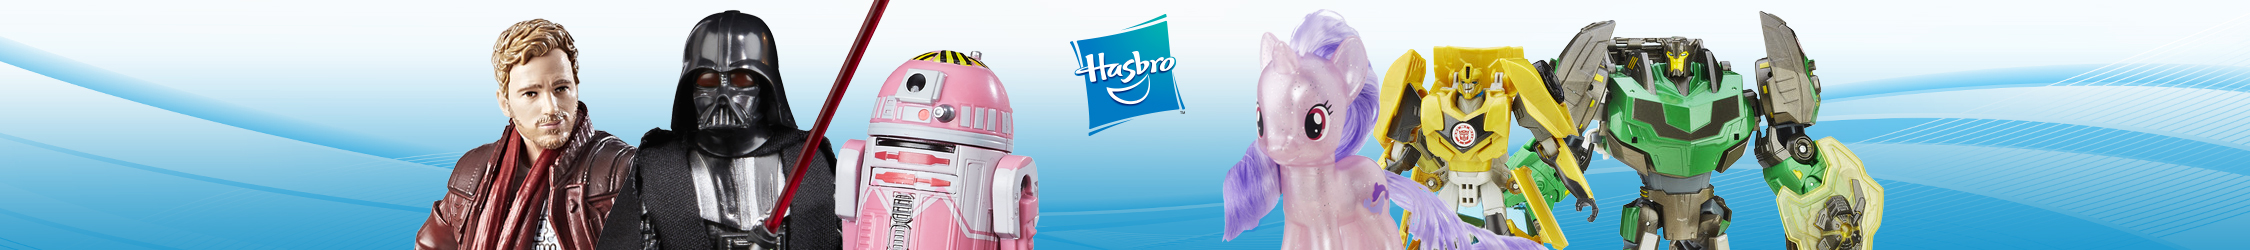 Hasbro Action Figures, Toys, & Collectibles